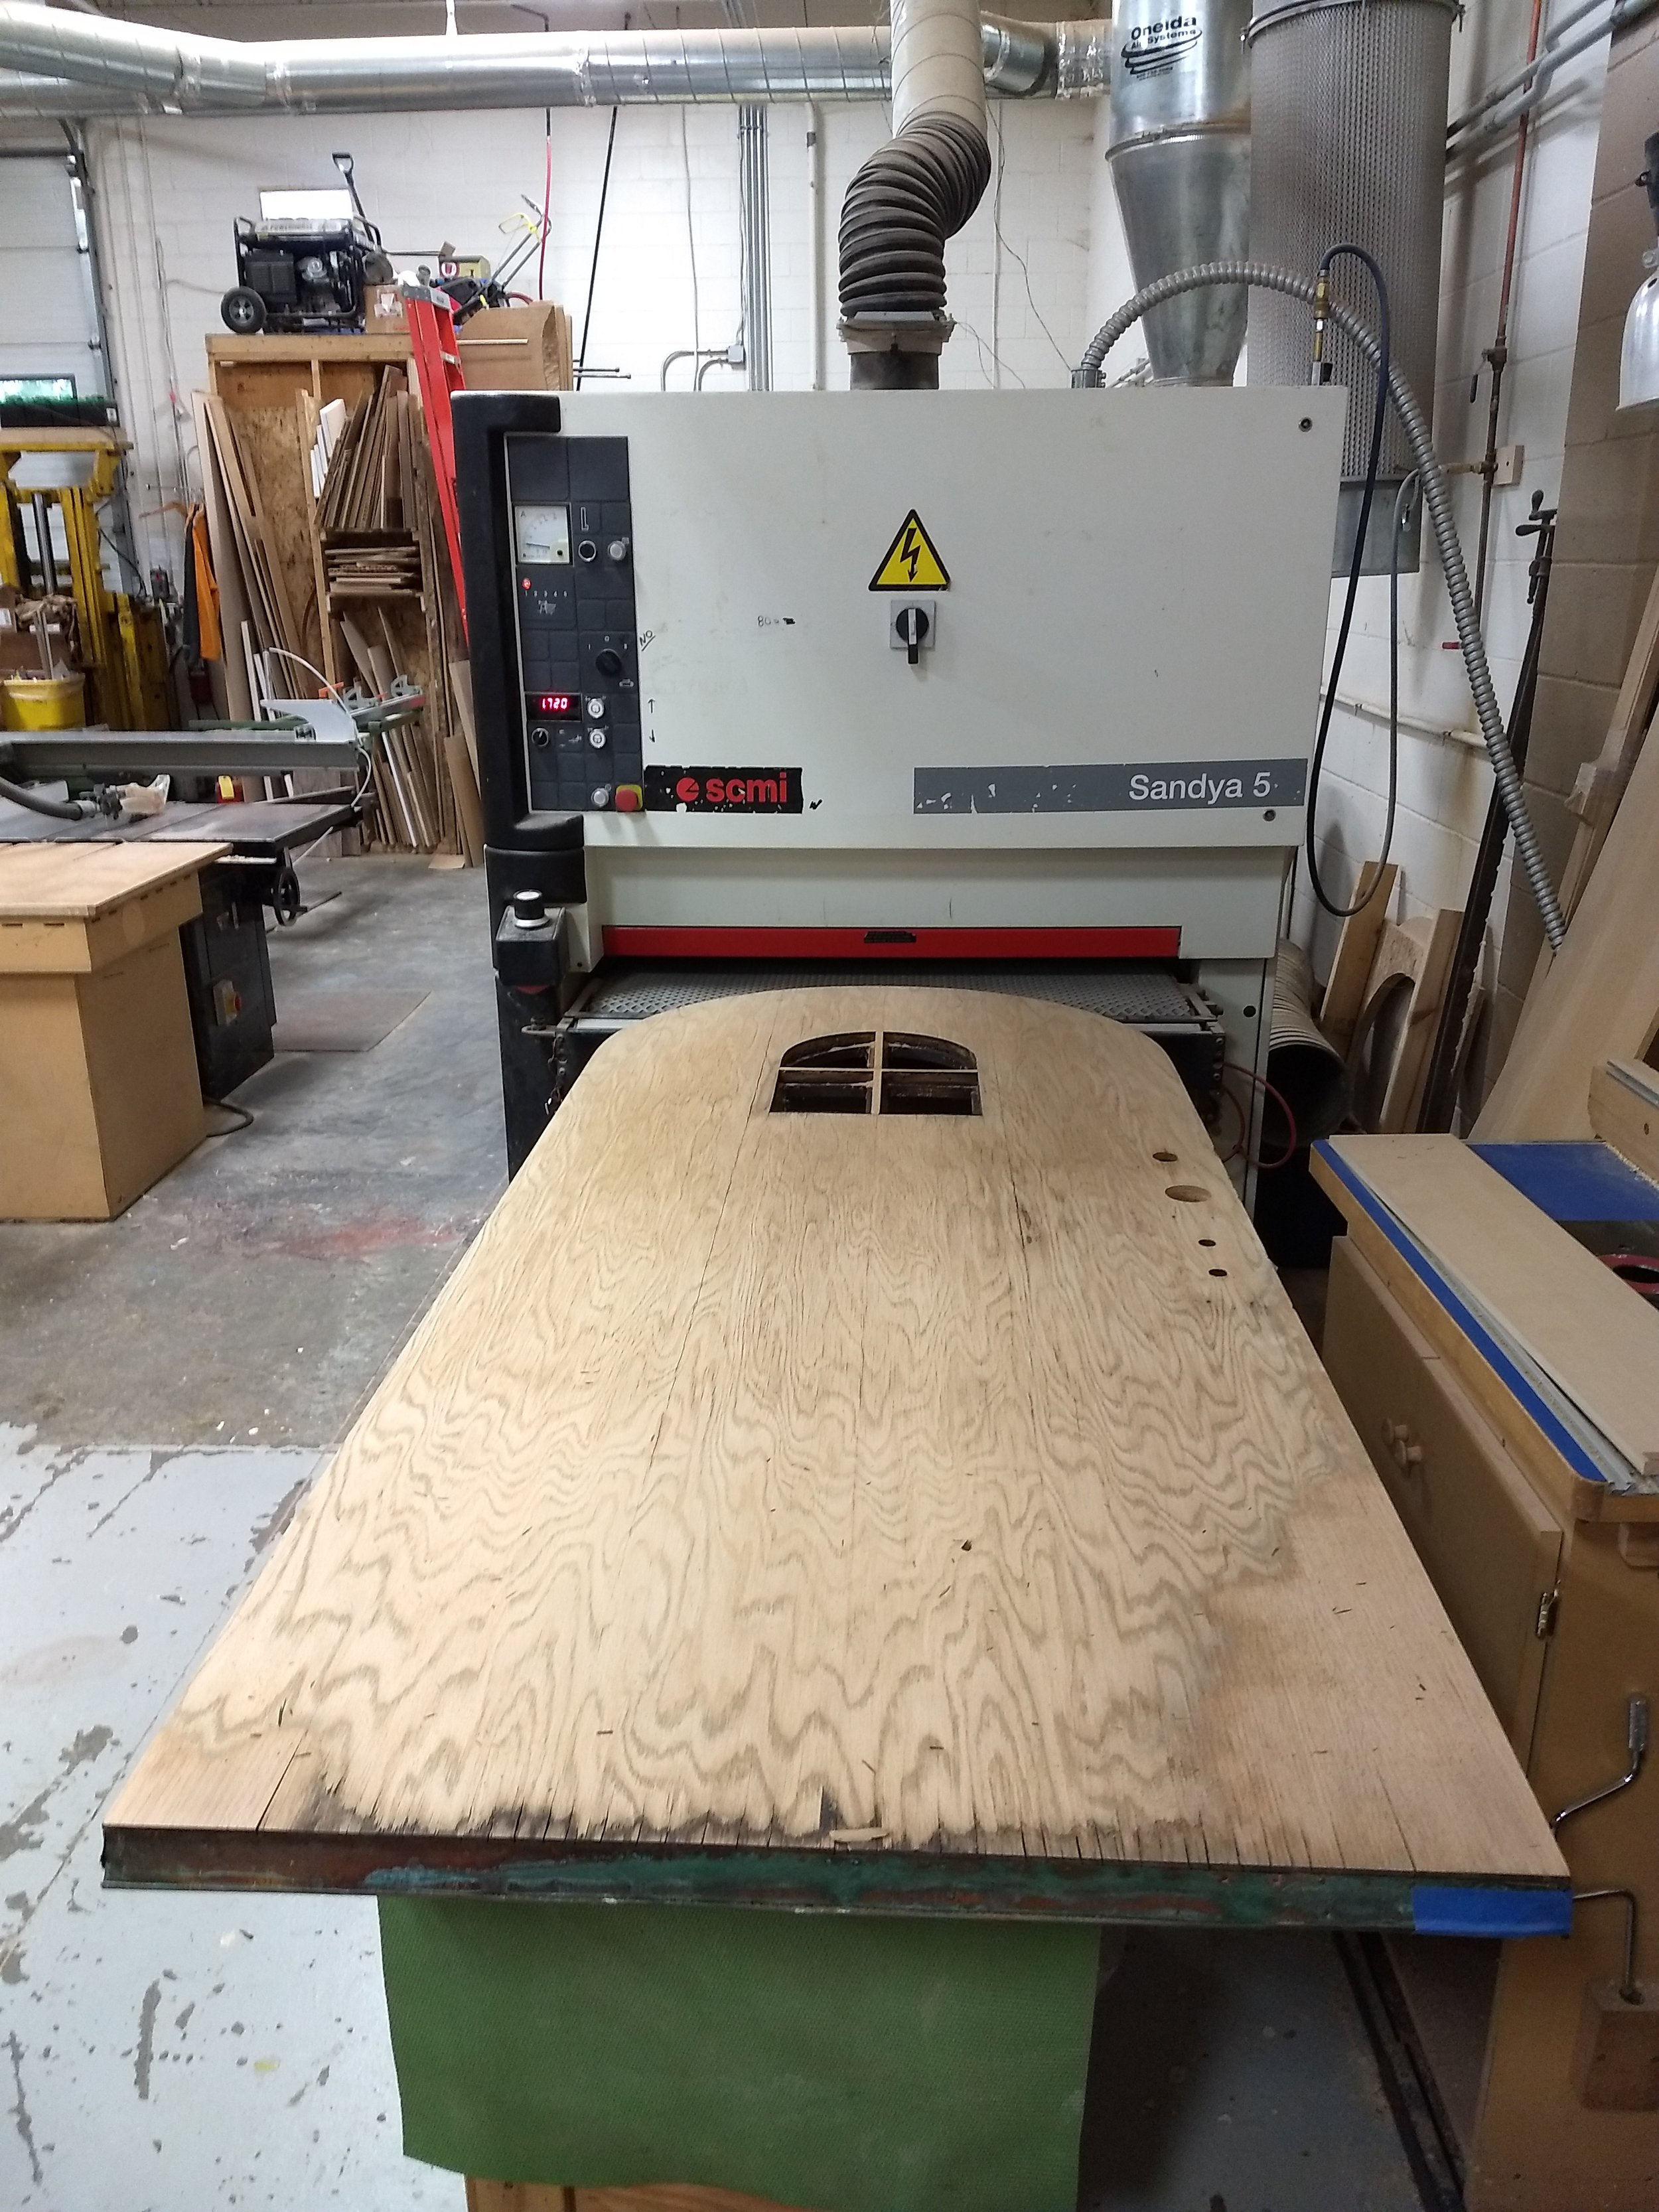 Sanding off the outer ply